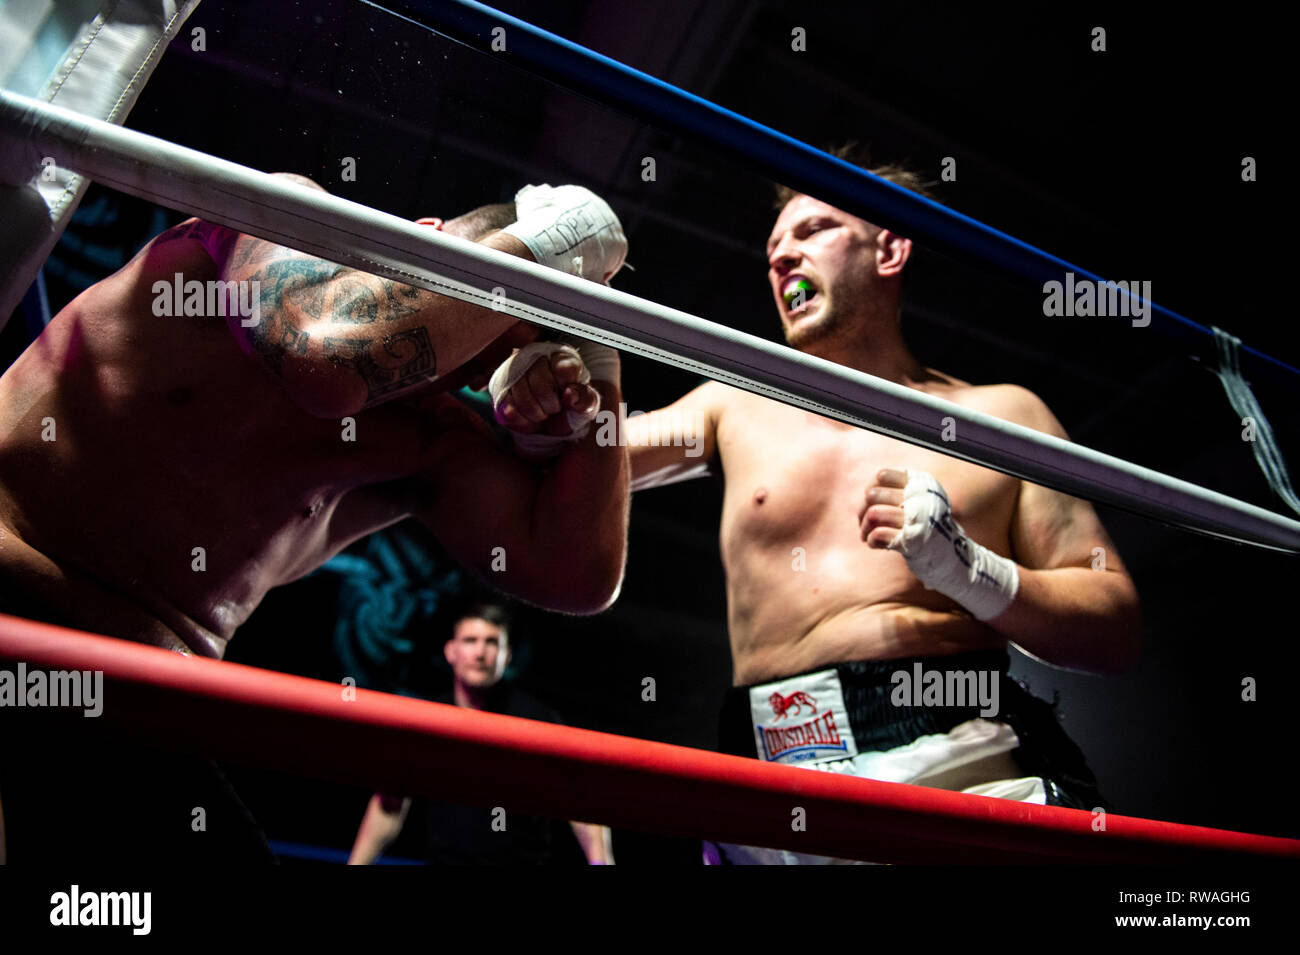 Stoke on Trent, UK. 23 February 2019. Bare knuckle and gloved fighters compete in an event held in Stoke-on-Trent. Whilst bare knuckle boxing is legal in the UK, it is currently unregulated and seen as an underground sport. Credit: Benjamin Wareing/ Alamy Live News - Stock Image